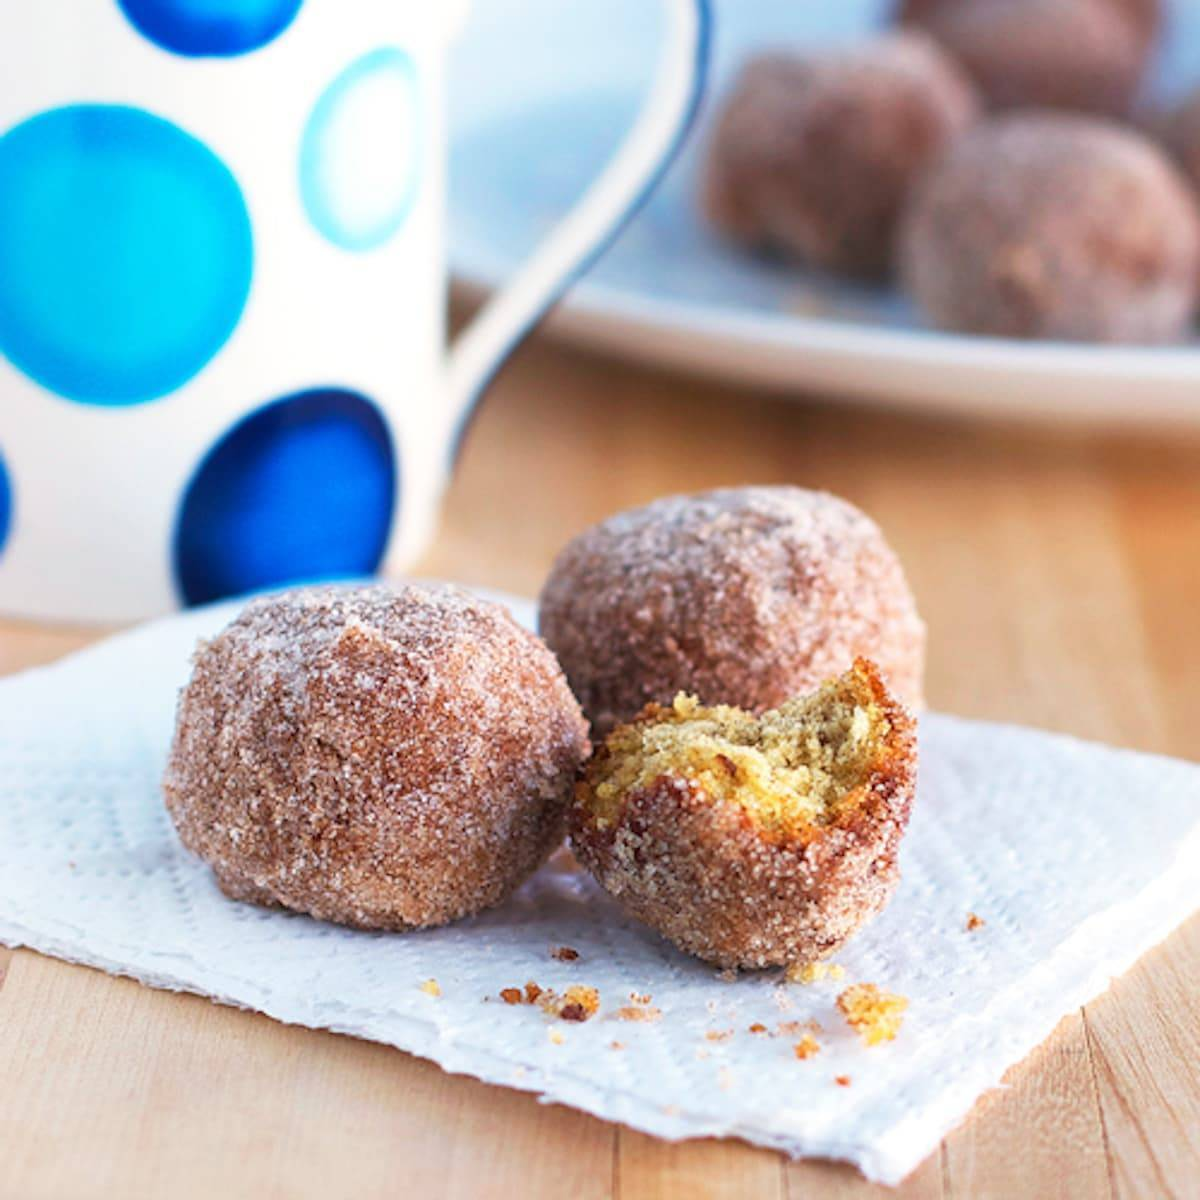 Cinnamon sugar donut balls with crumbs on a napkin.